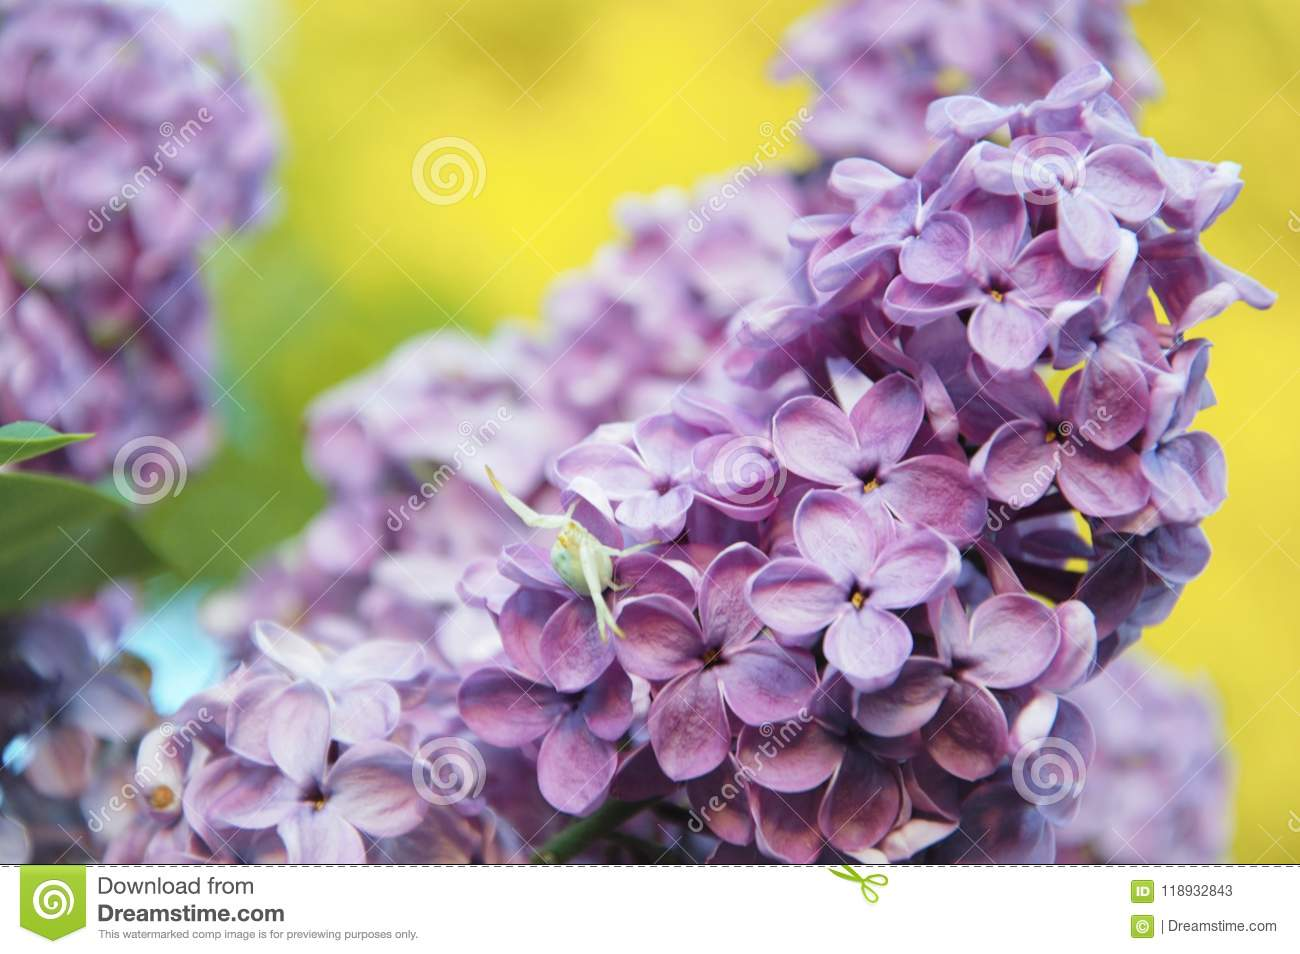 Flowers of the lilac plant blooming in late spring stock image flowers of the lilac plant blooming in late spring mightylinksfo